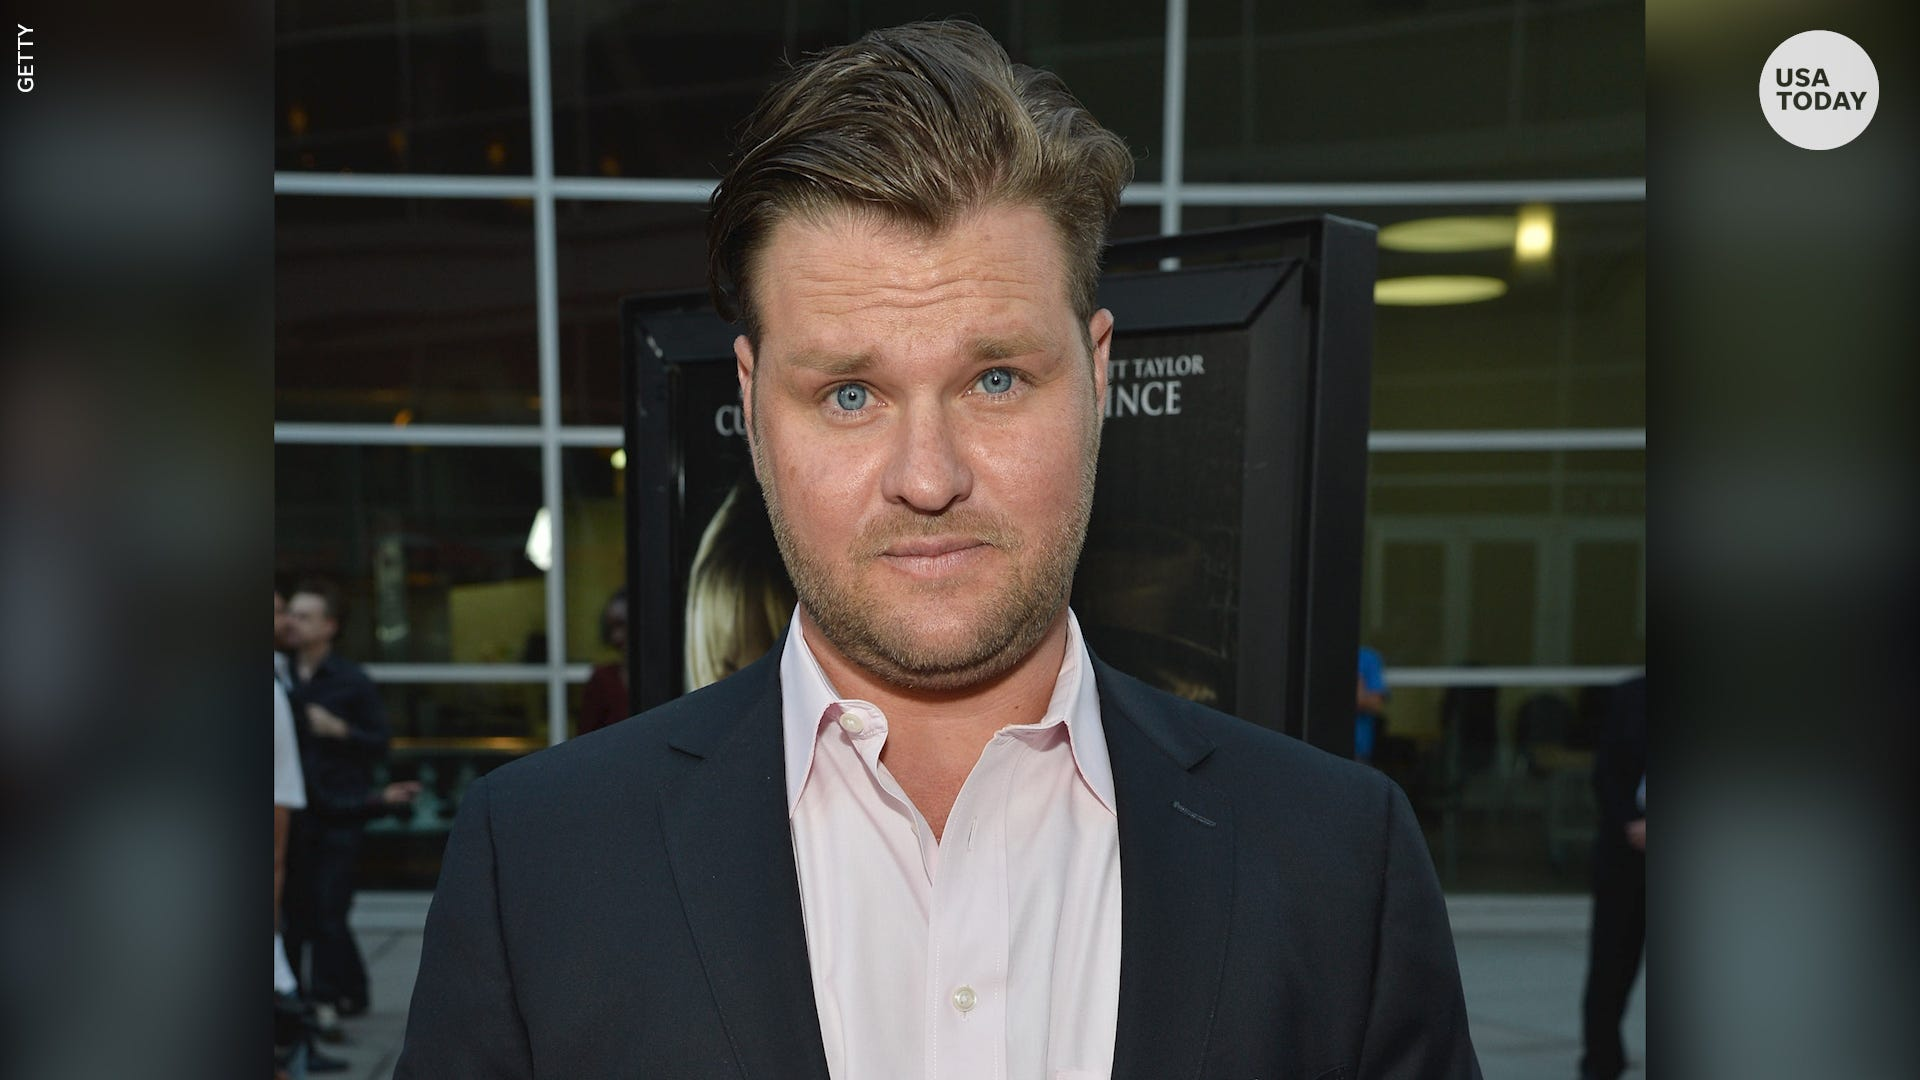 'Home Improvement' star Zachery Ty Bryan pleads guilty in domestic violence case